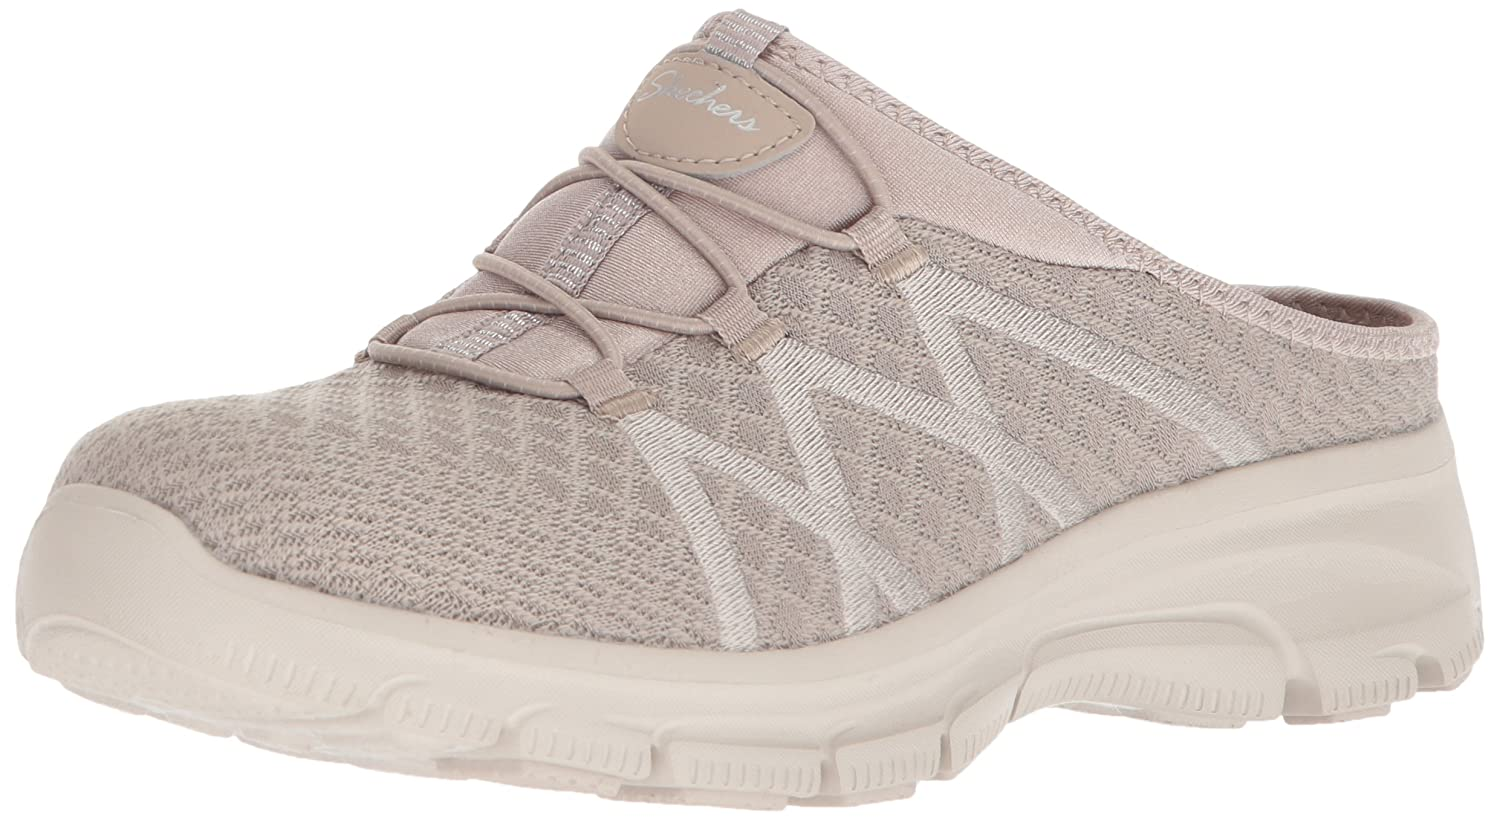 Skechers49329 - Easy Going - Knitty Gritty - Knit Bungee Version of The Easy Going - Repute Mule Damen Taupe